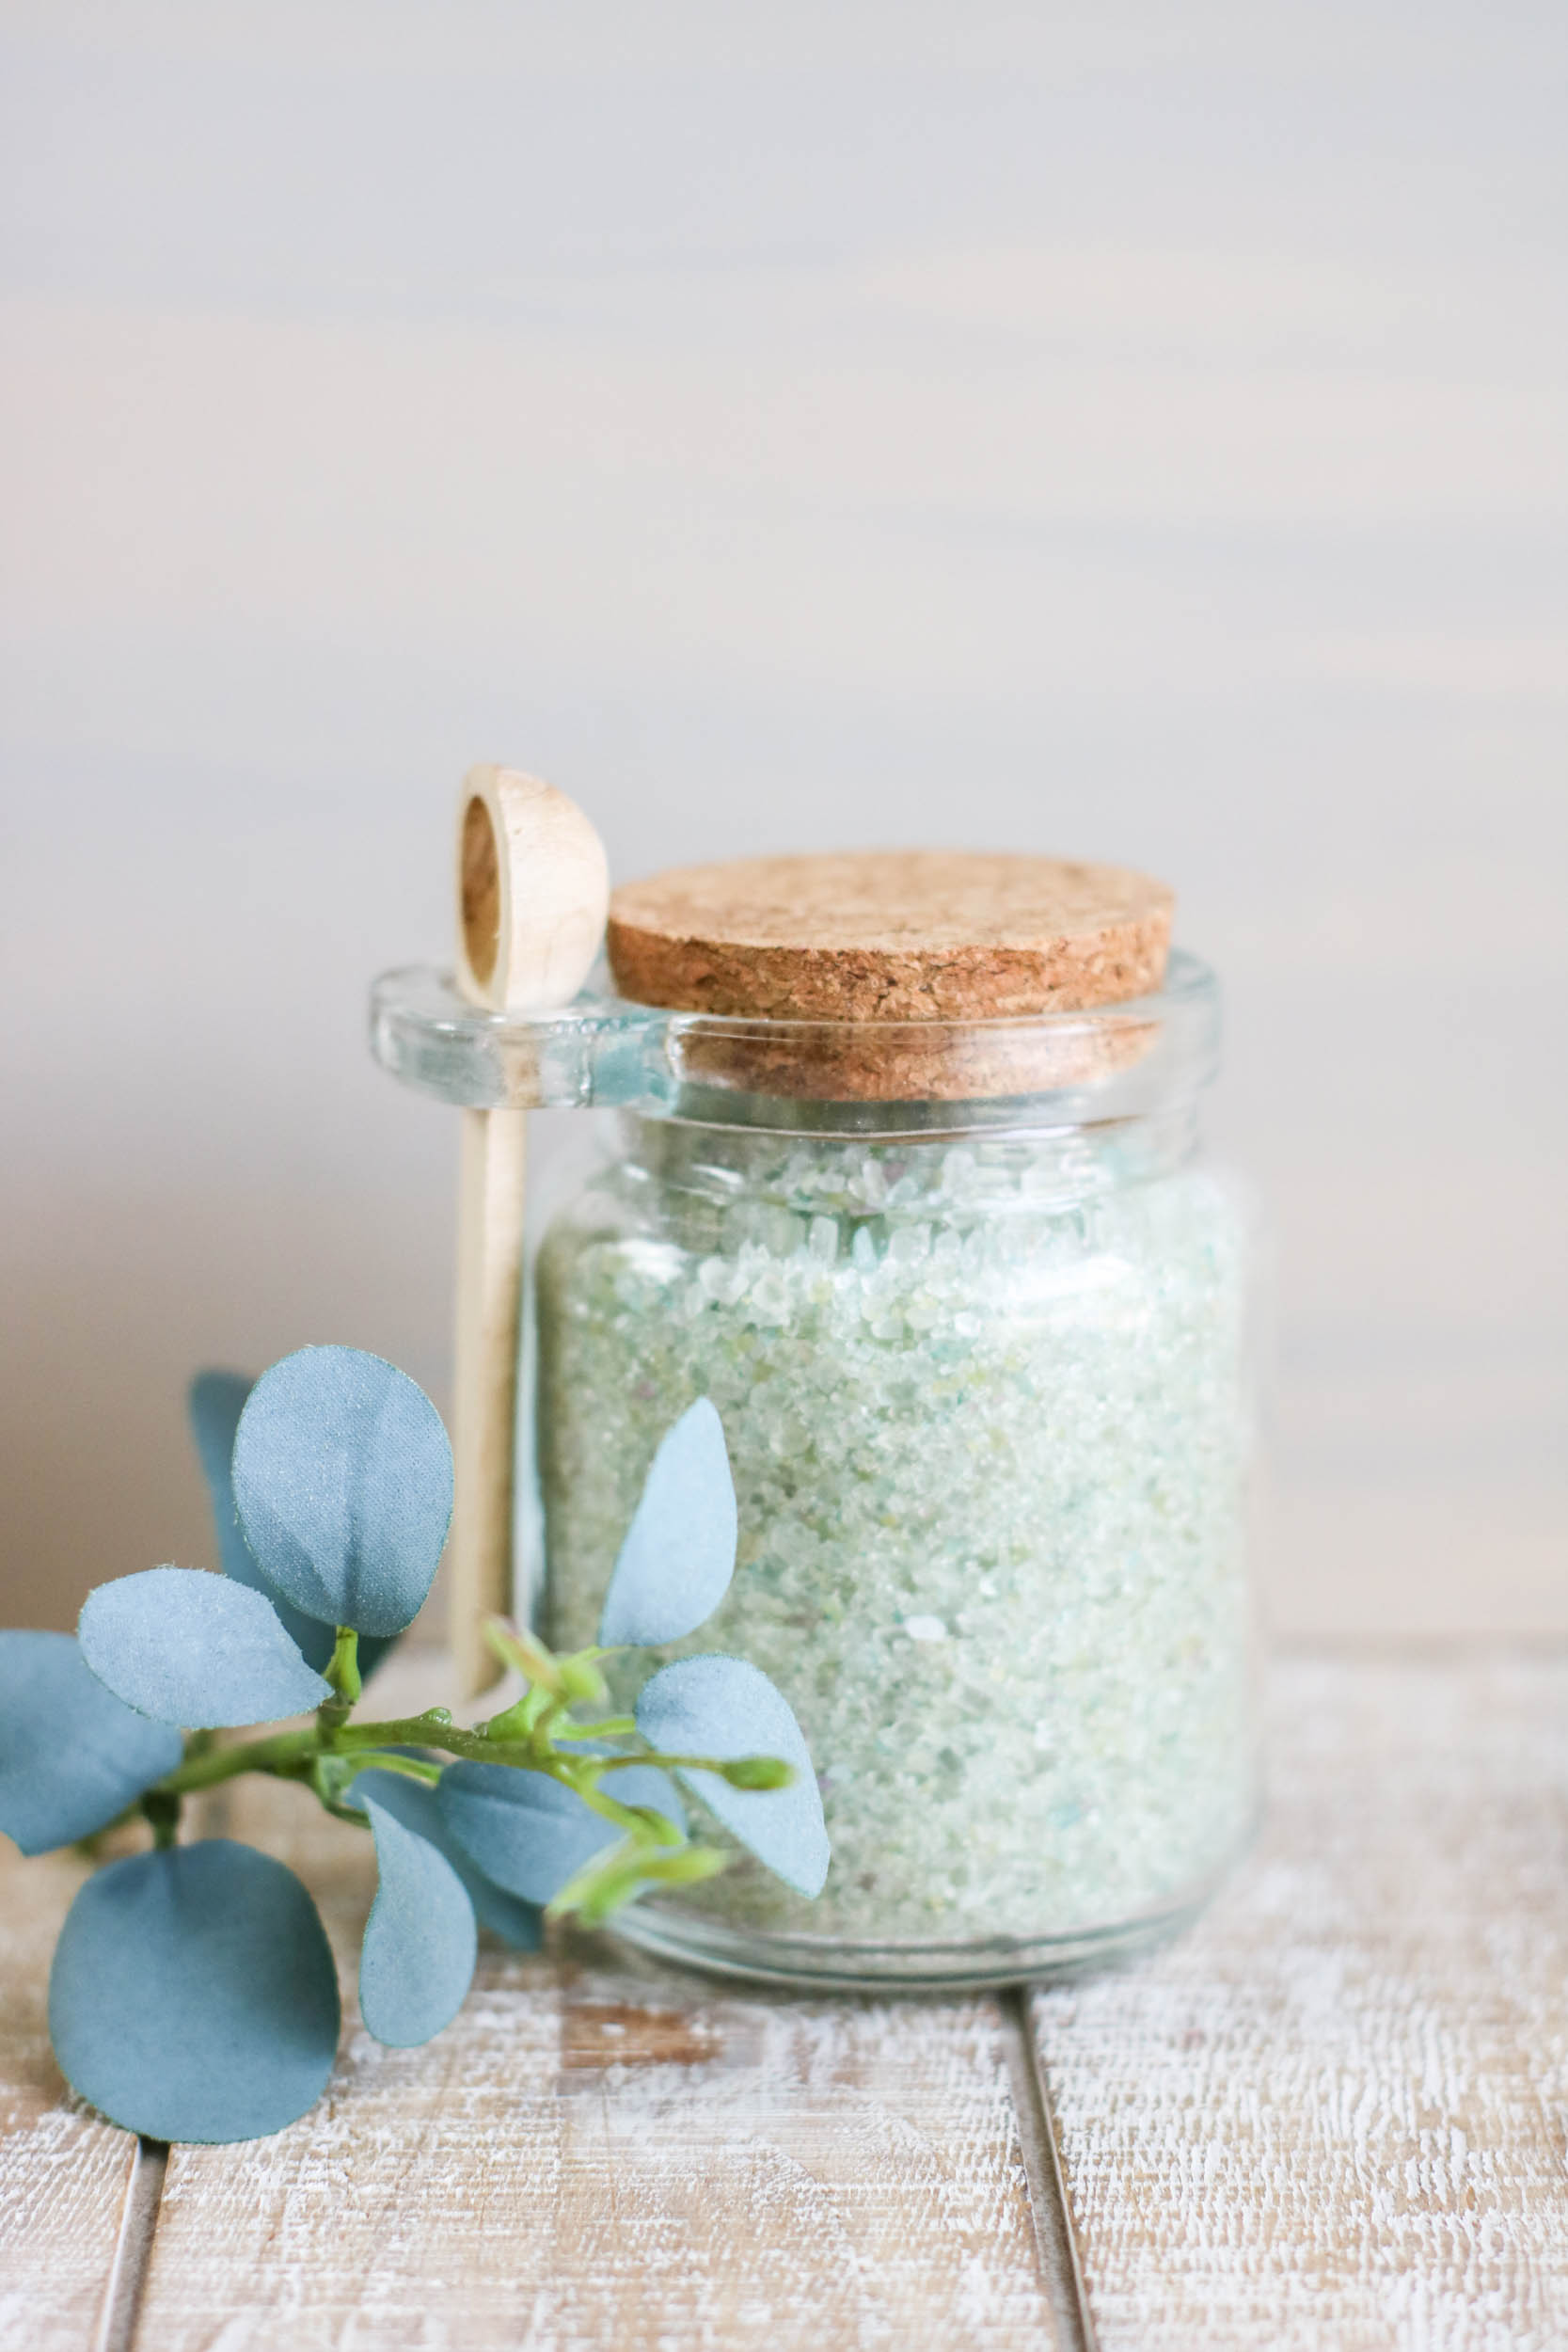 DIY Eucalyptus Bath Salts